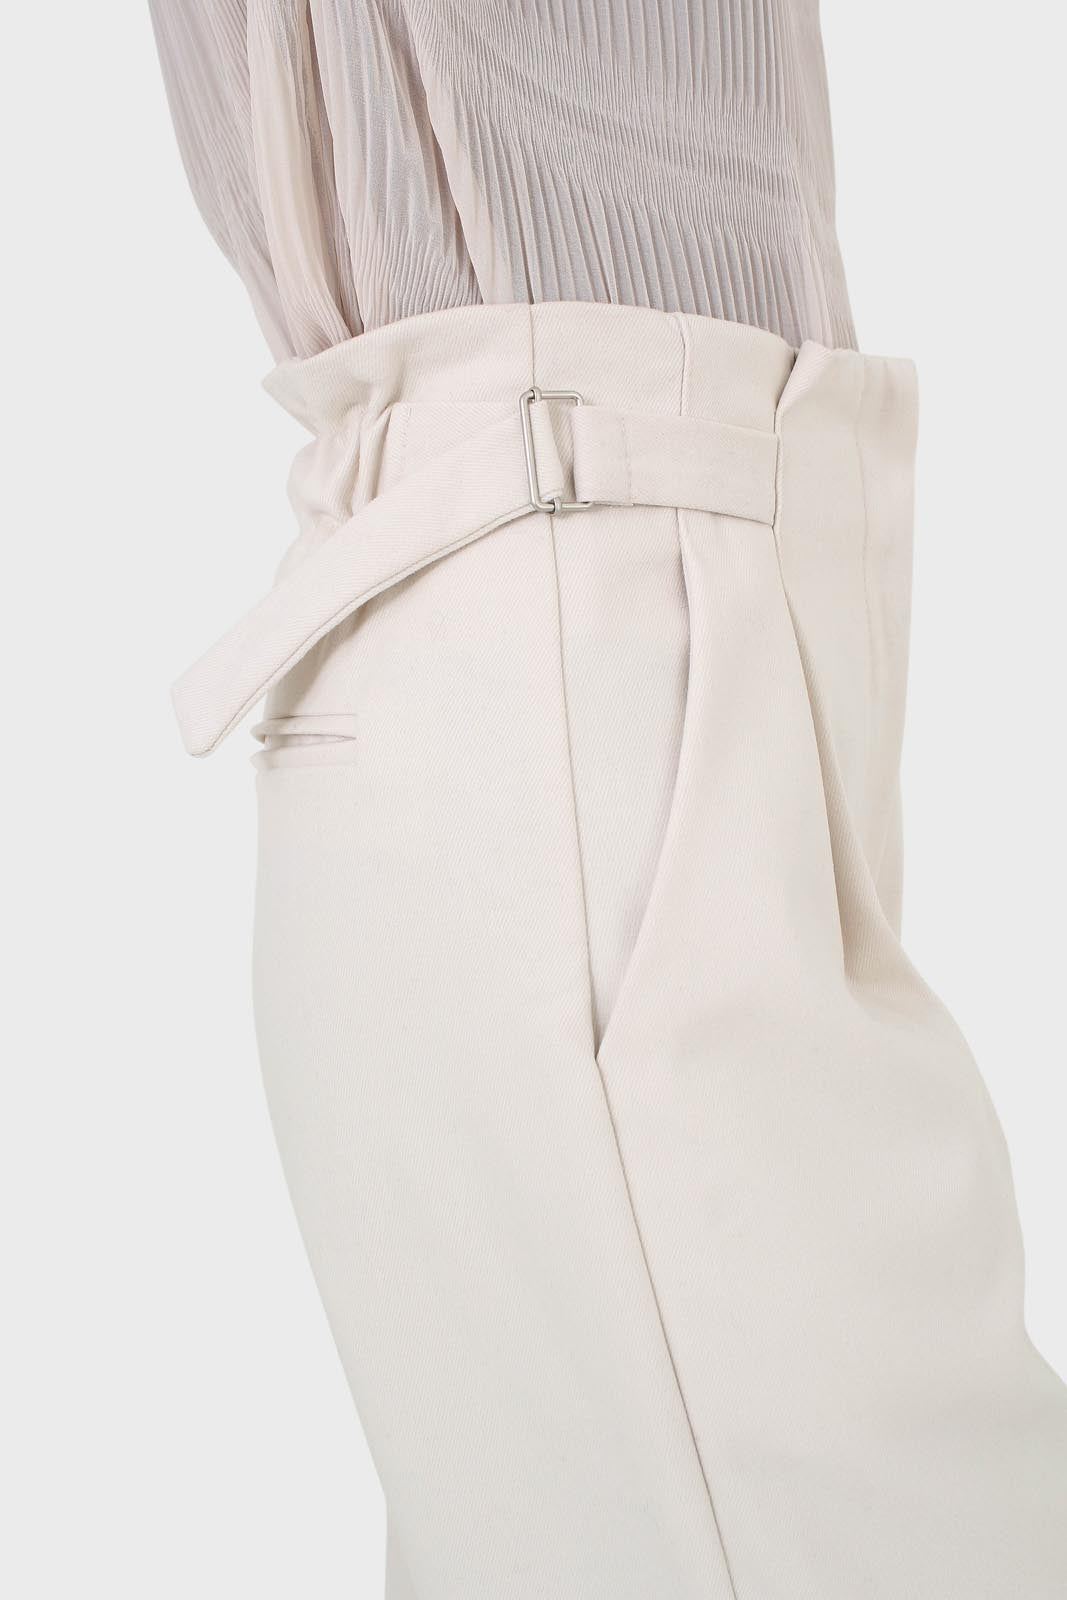 Ivory side buckle wide leg trousers5